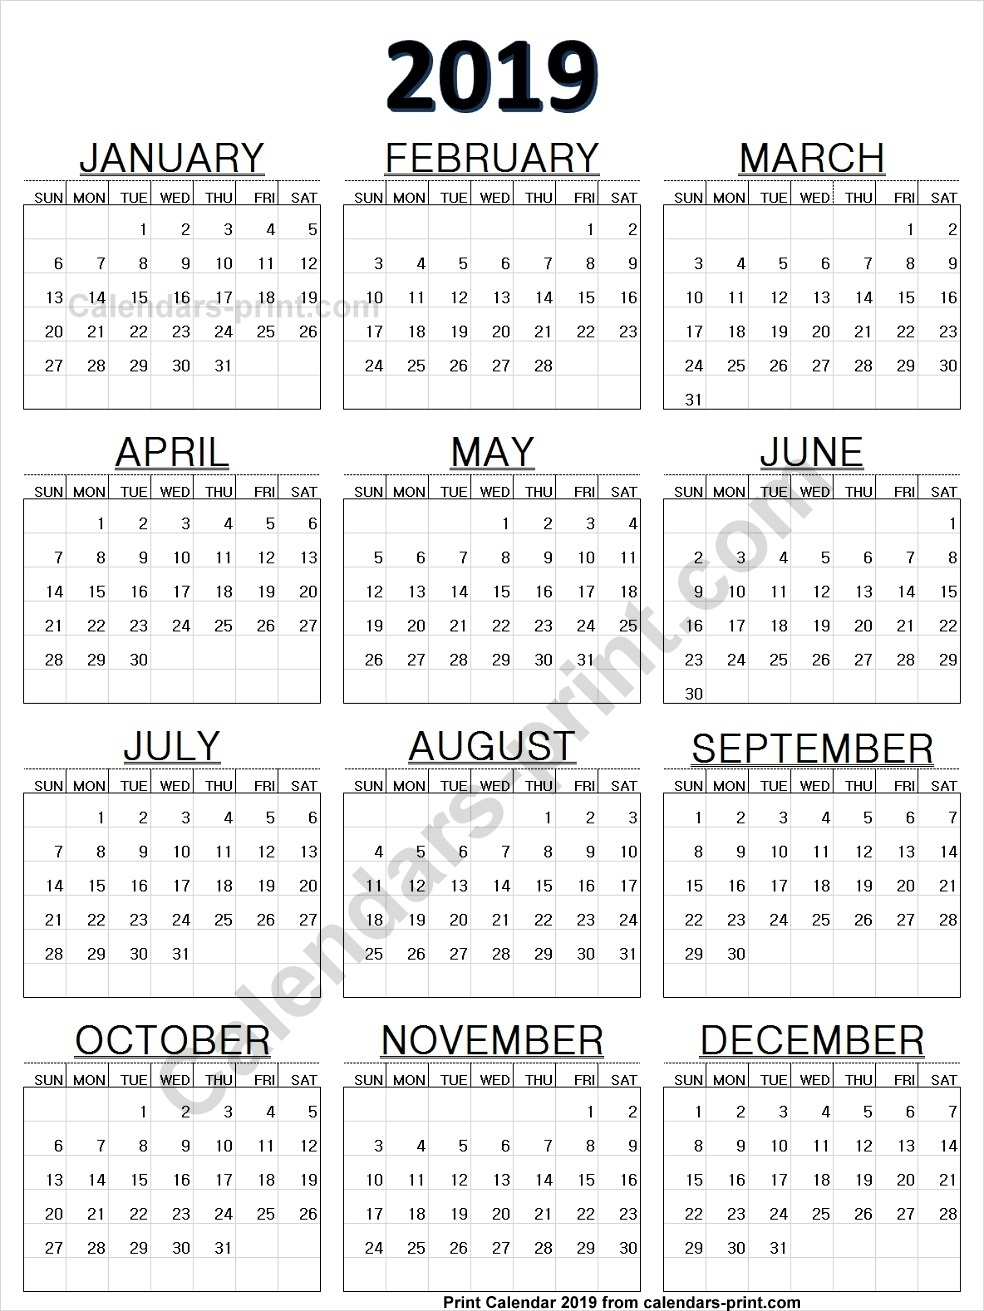 Online Calendar 2019 Printable Template With Notes | Holidays Online Calendar Printing With Photos